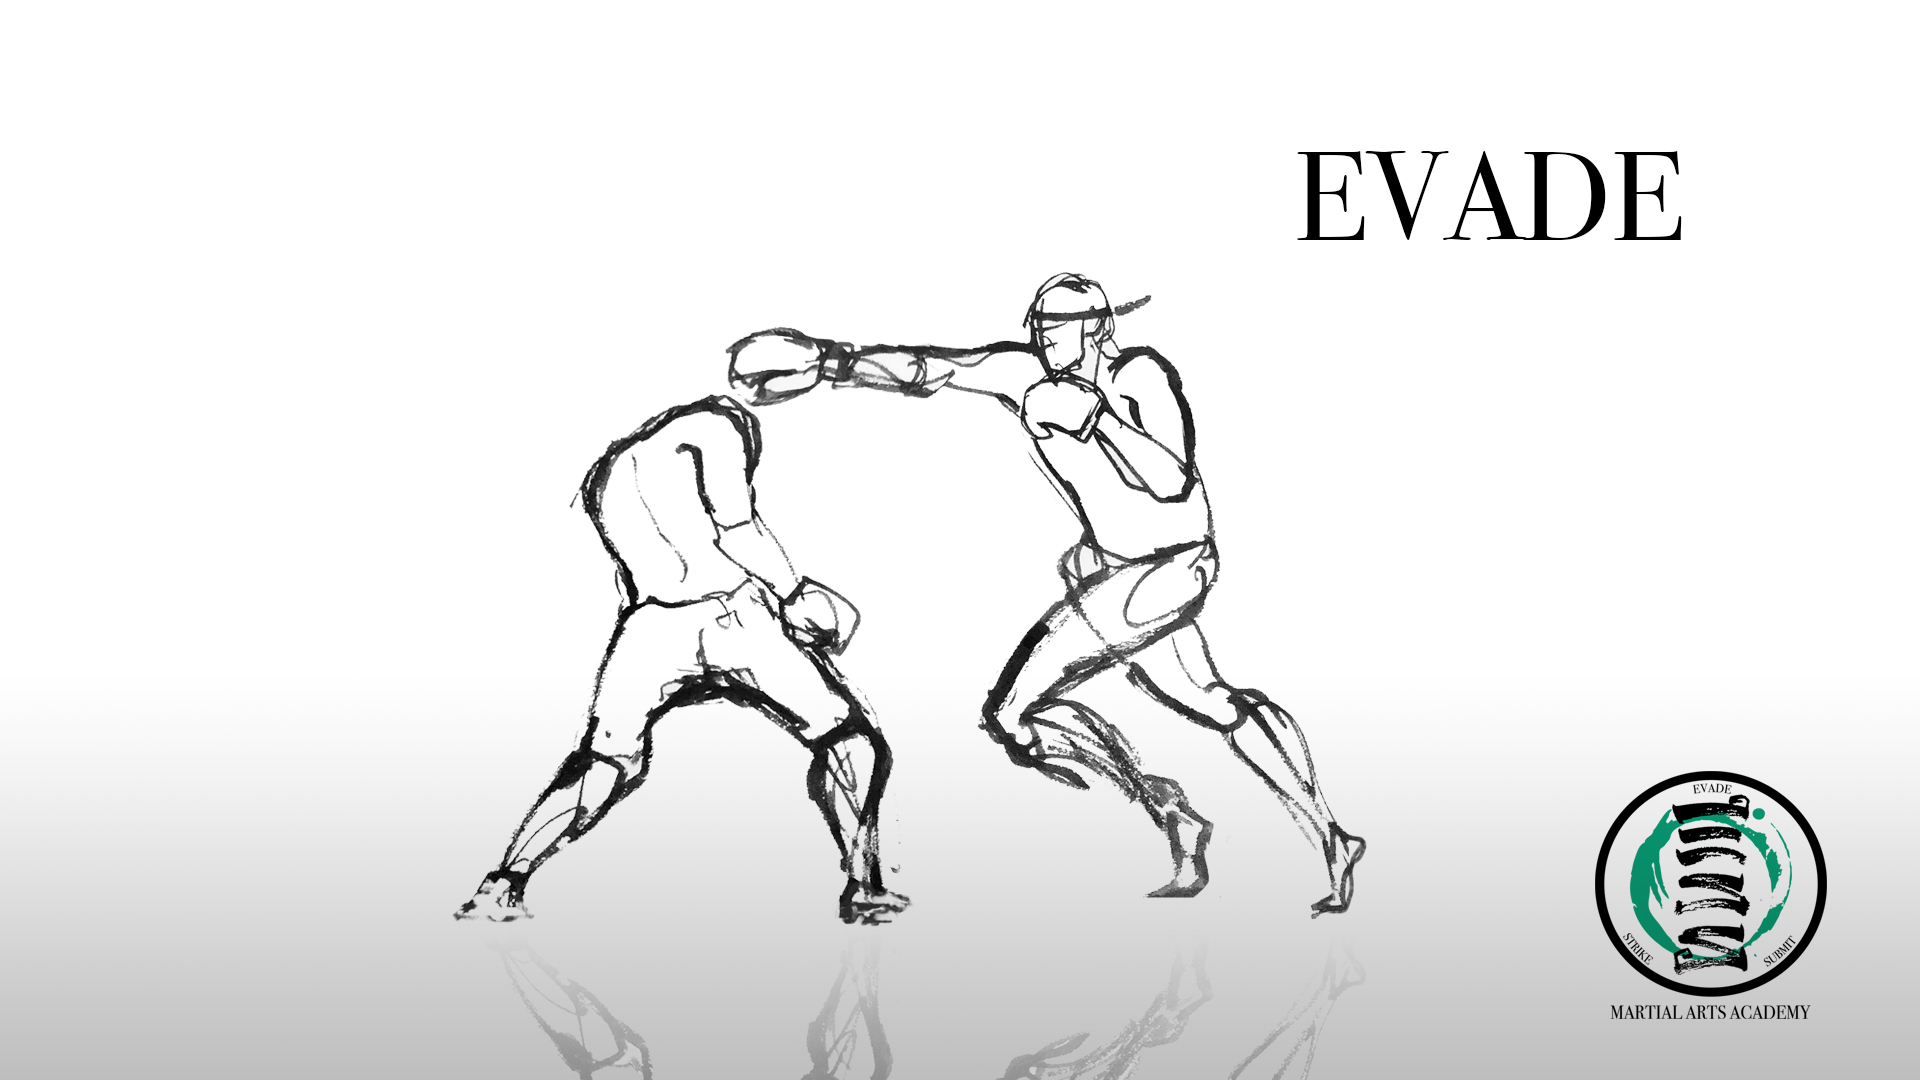 "Footwork is the best defense. Develop a sense of distance and you will decrease the chances of being hit or grabbed. Above all, a trained martial artist should avoid conflict. ""Evade,"" therefore, goes beyond fighting concepts and should be equal to a practitioners' striking and grappling abilities."